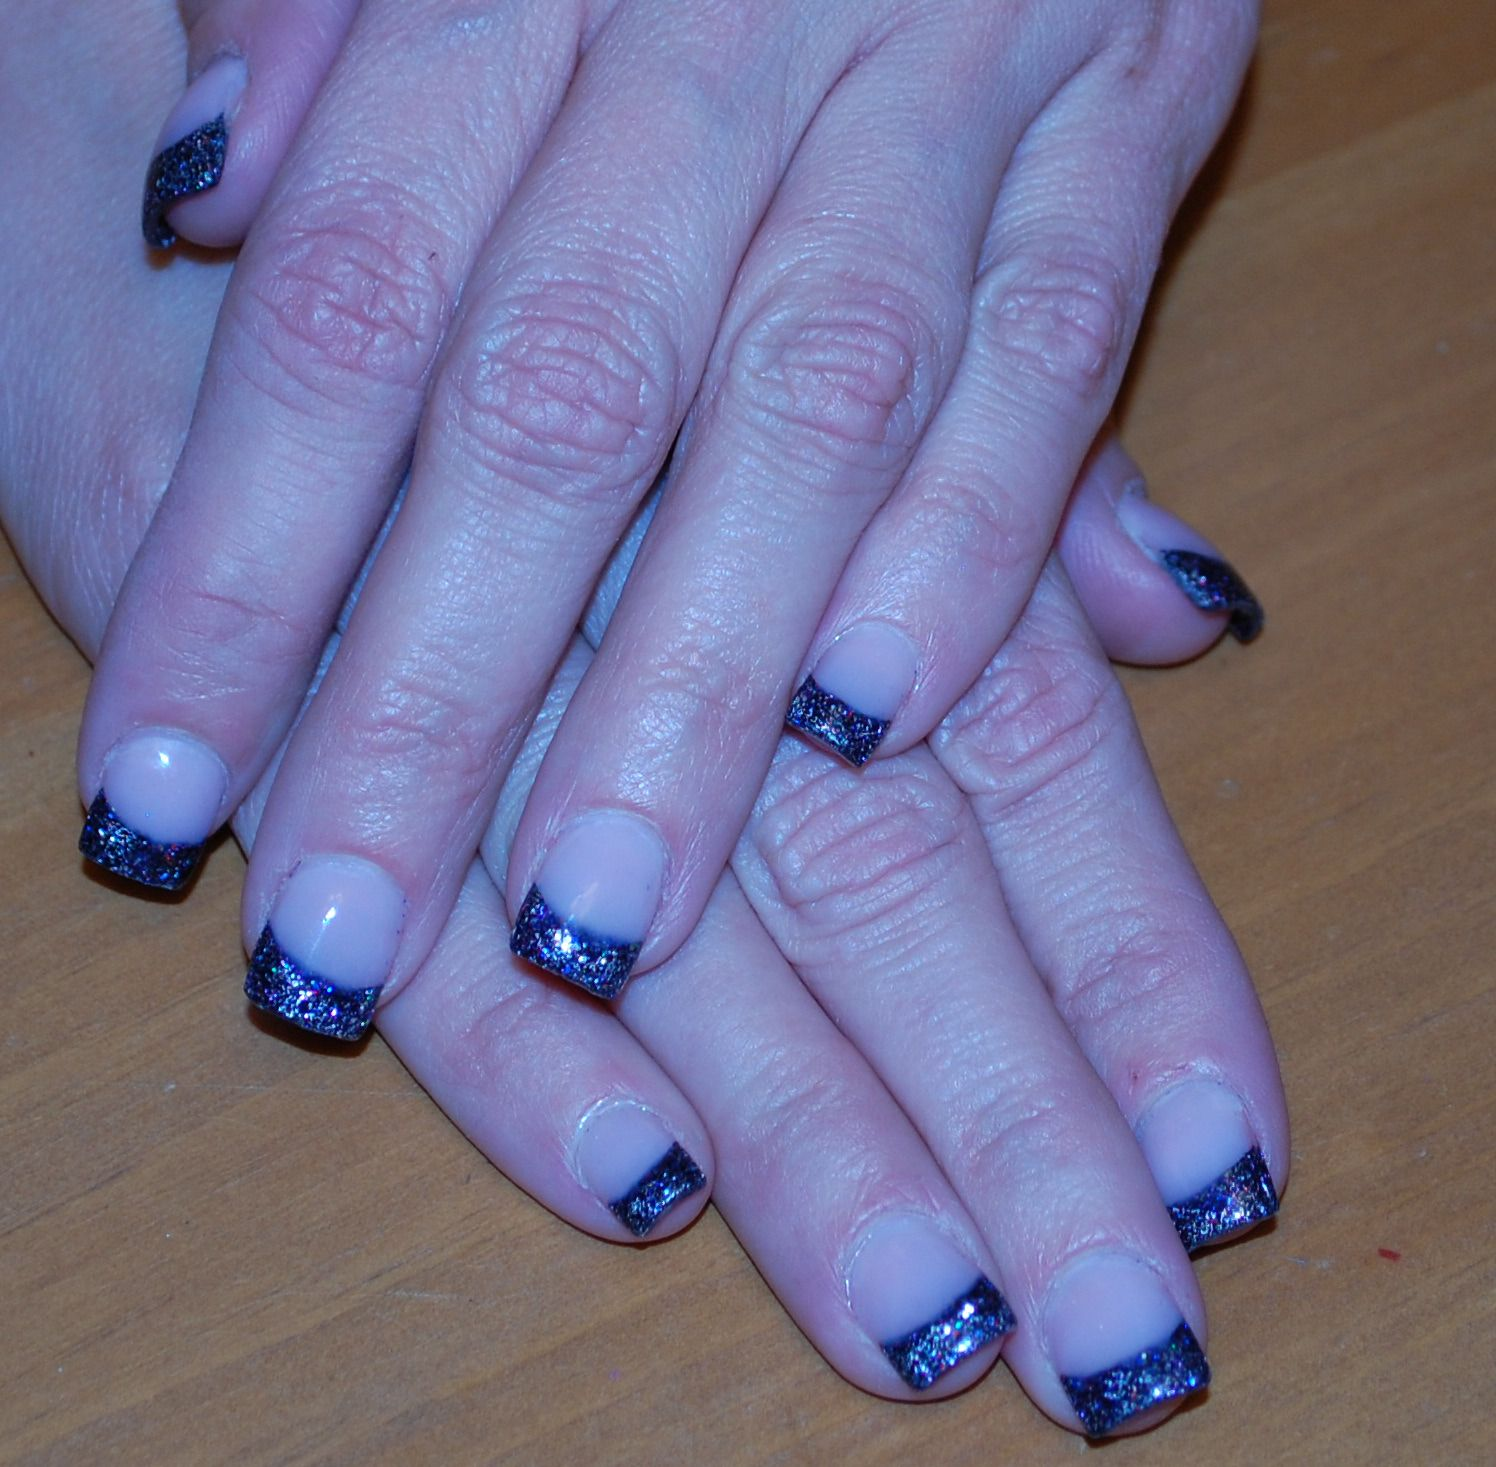 Nailite Custom Blend Colored Acrylic Nailite Online Nail Tech